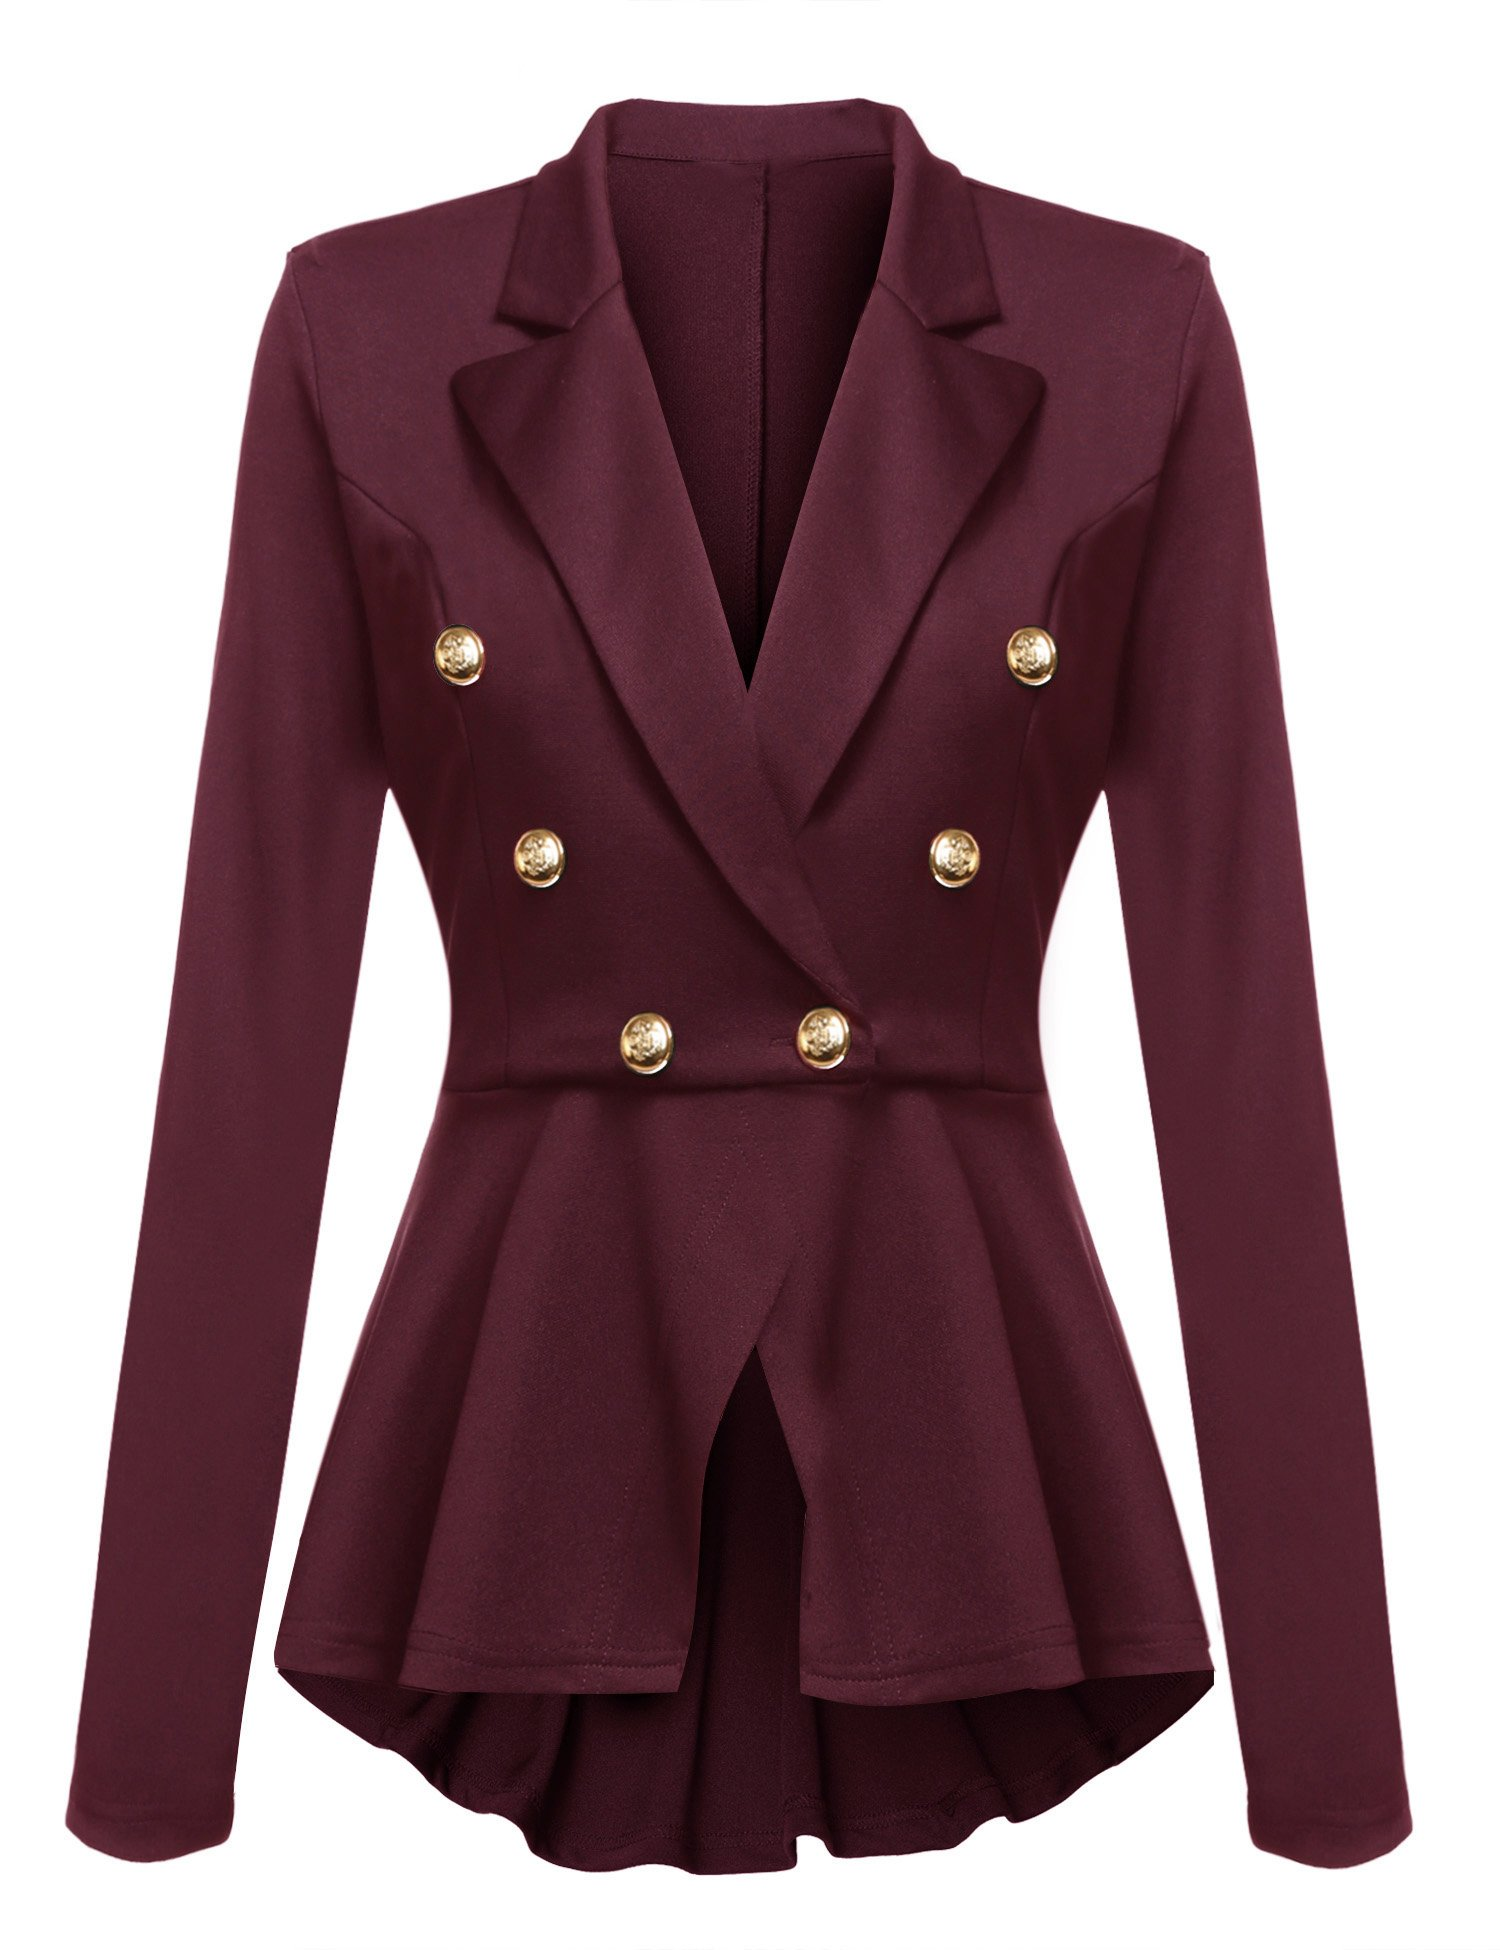 Gumod Women's Cotton Rolled Up Sleeve Blazer Jacket Suits With Buttons Wine Red XL